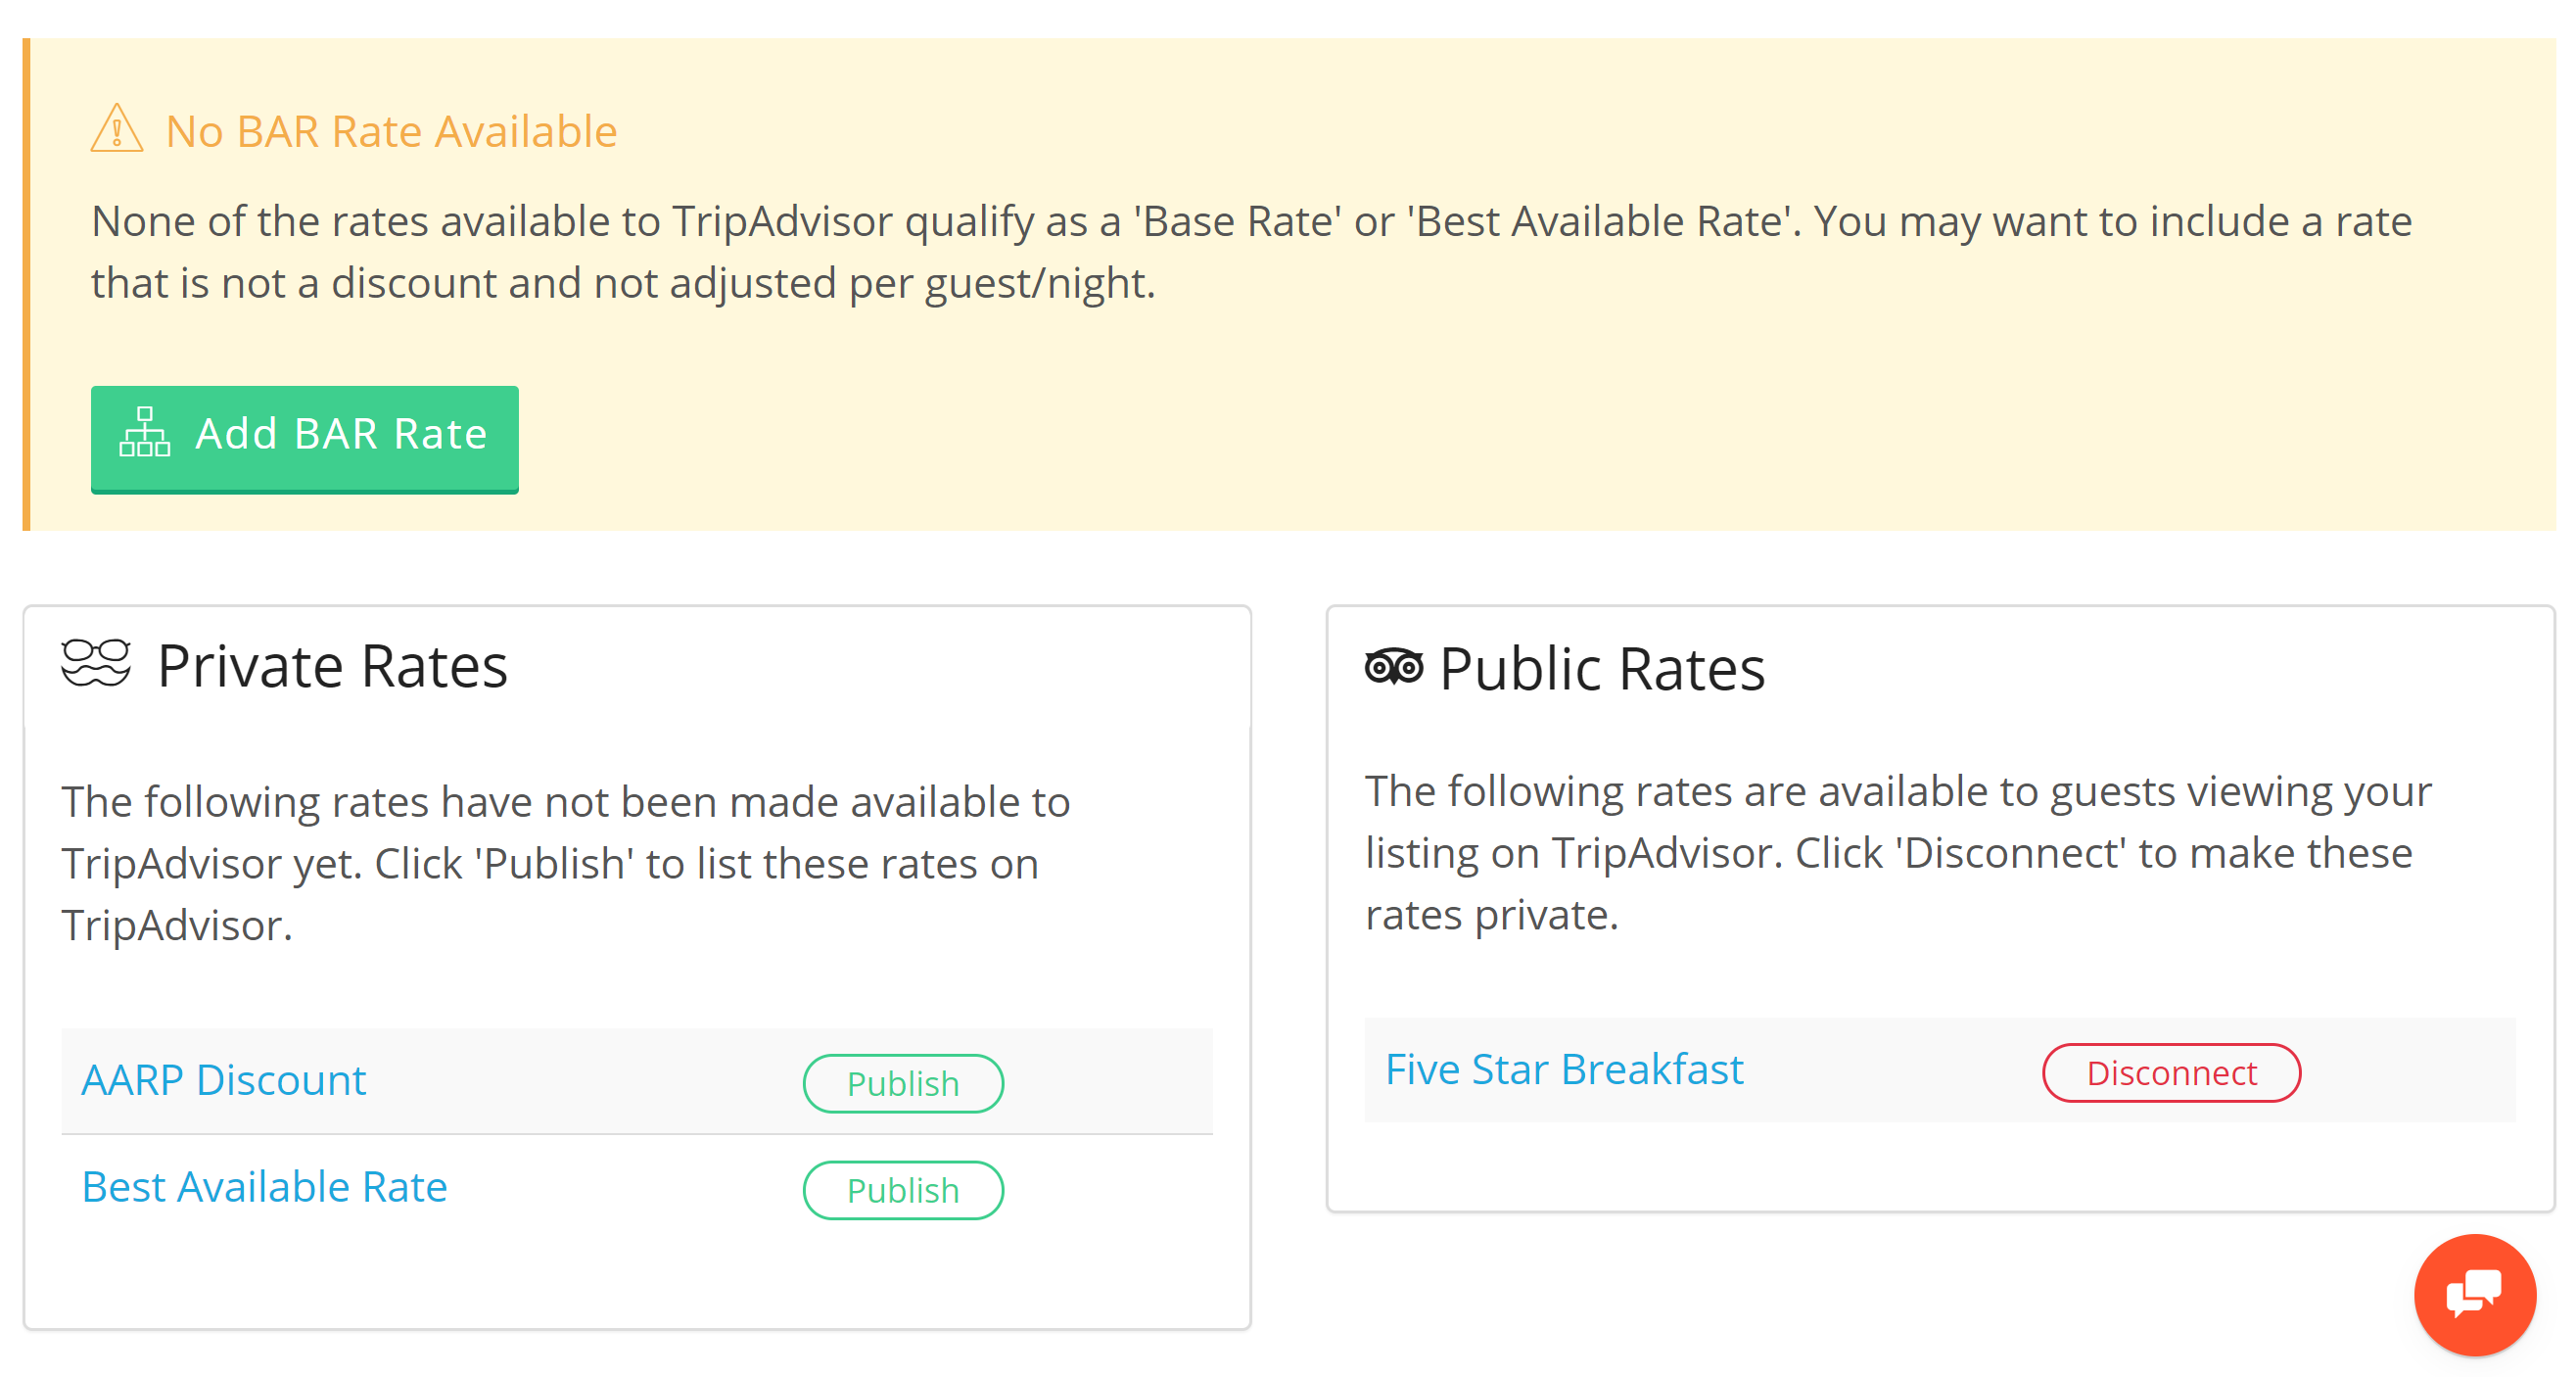 Hotel TripAdvisor TripConnect              We are proud to be a TripAdvisor TripConnect Premium Partner. We provide a simple API level connection that allows our hotel partners to manage their rooms, rates, and meta content automatically on this network.